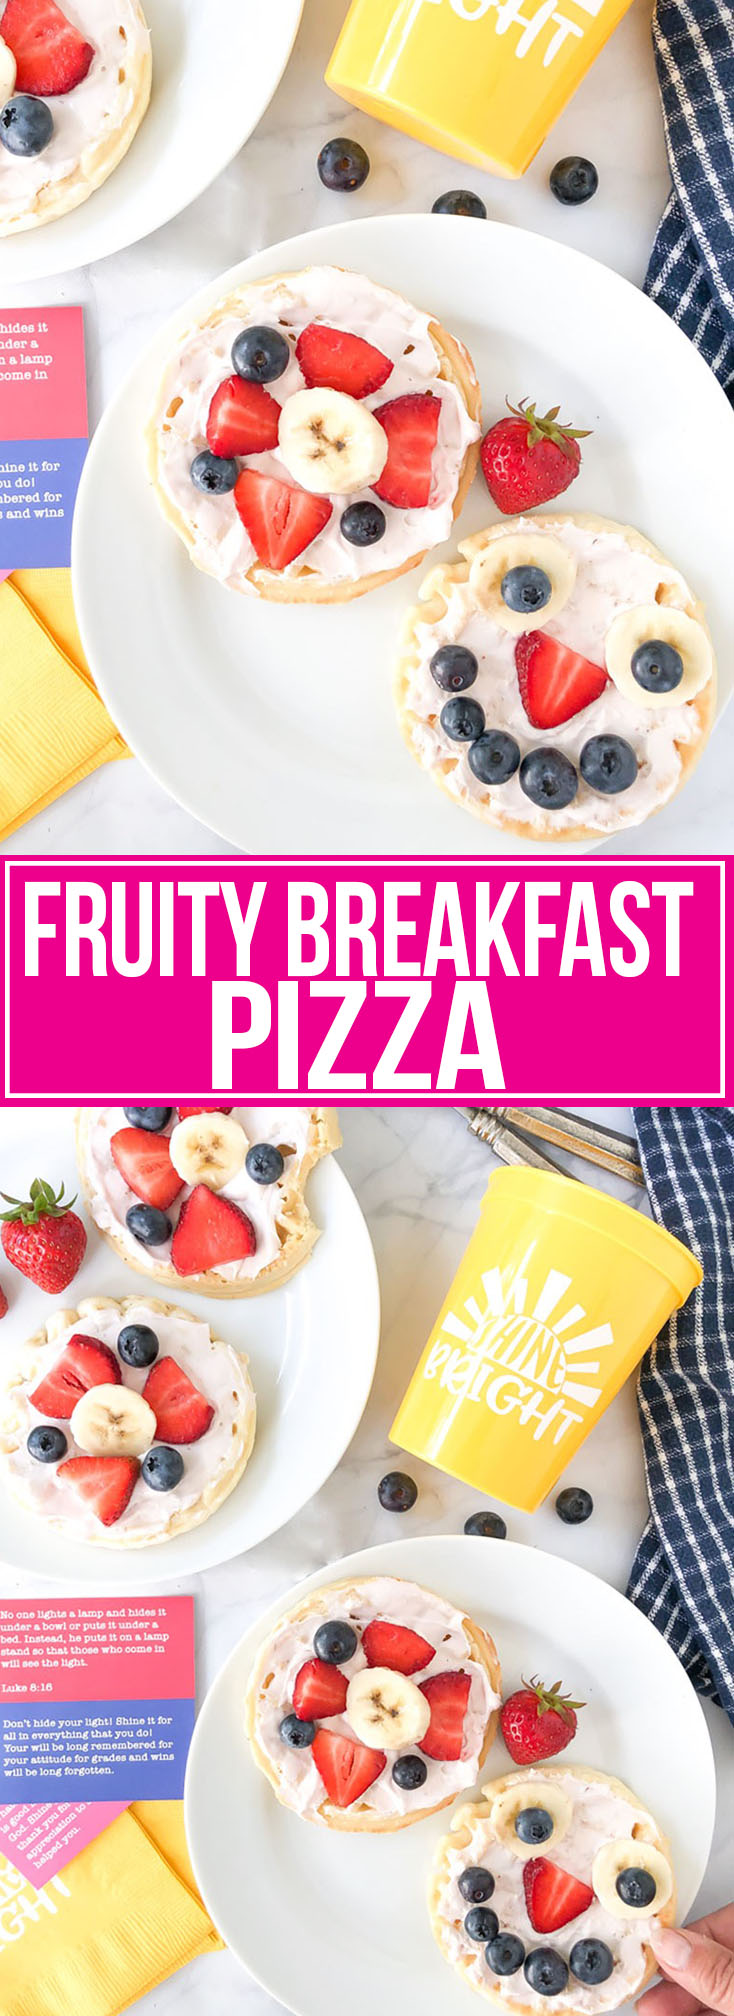 FRUITY BREAKFAST PIZZA